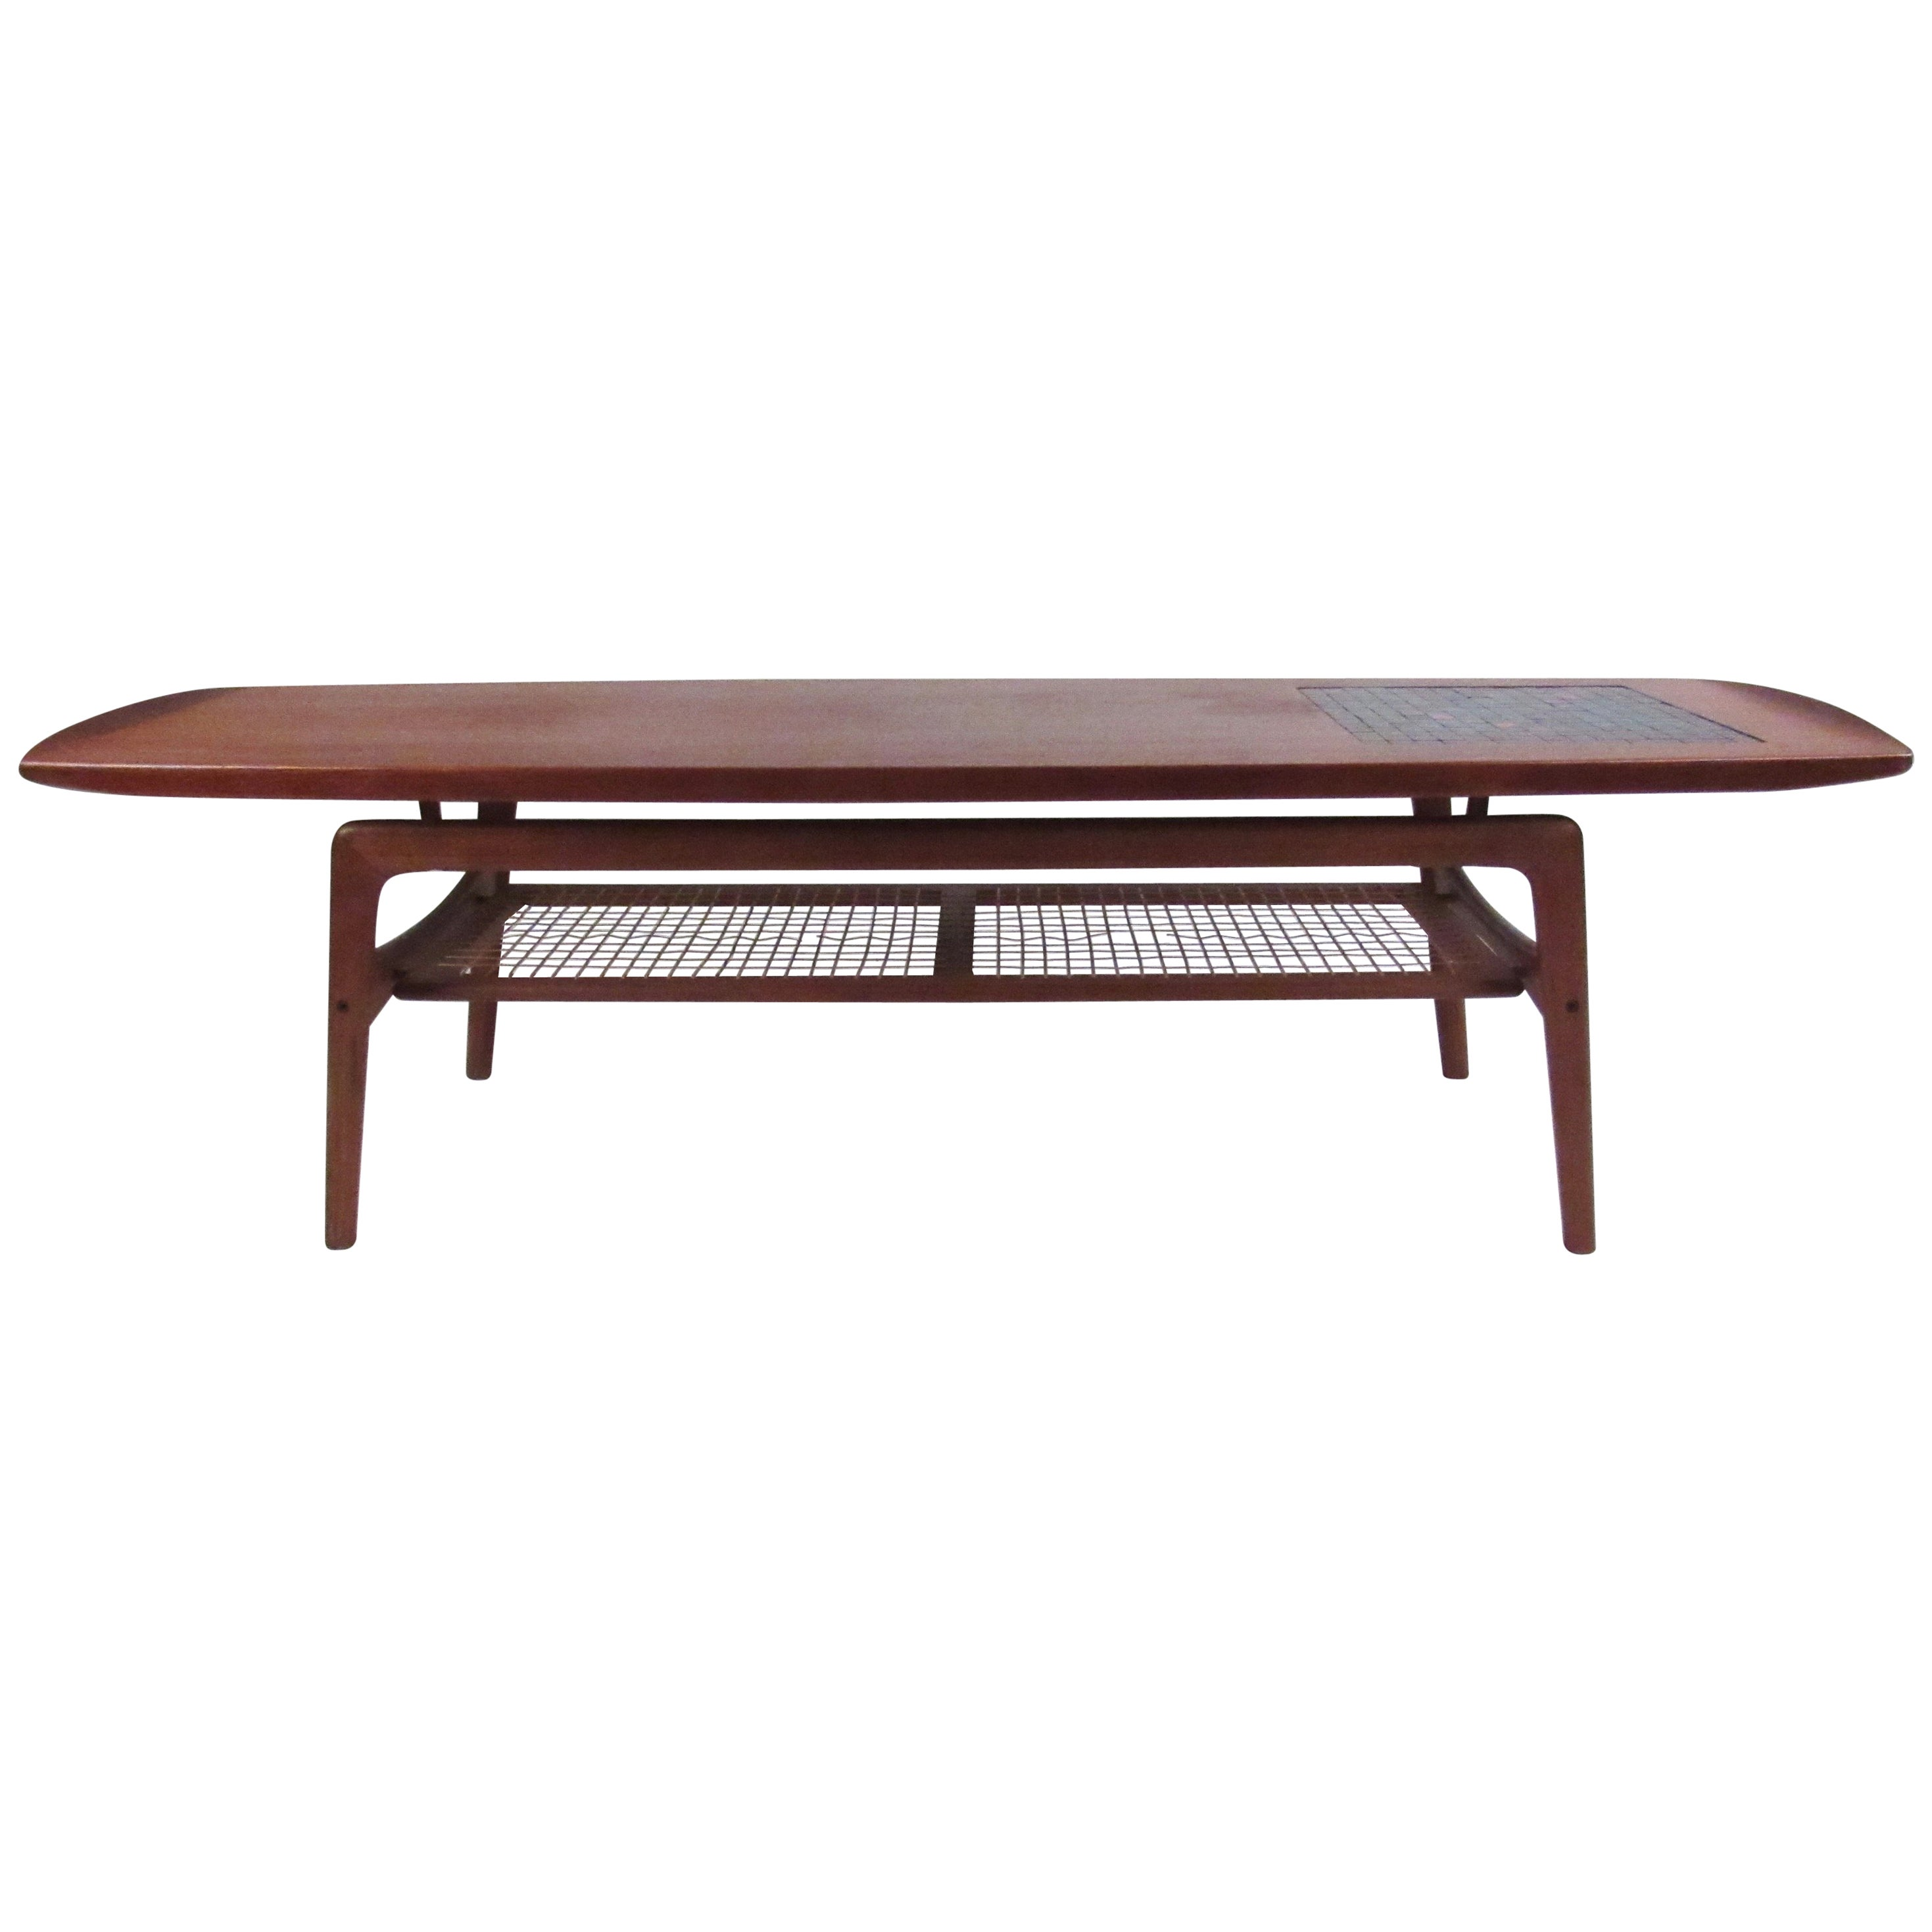 Danish Teak and Mosaic Coffee Table by Arne Hovmand-Olsen